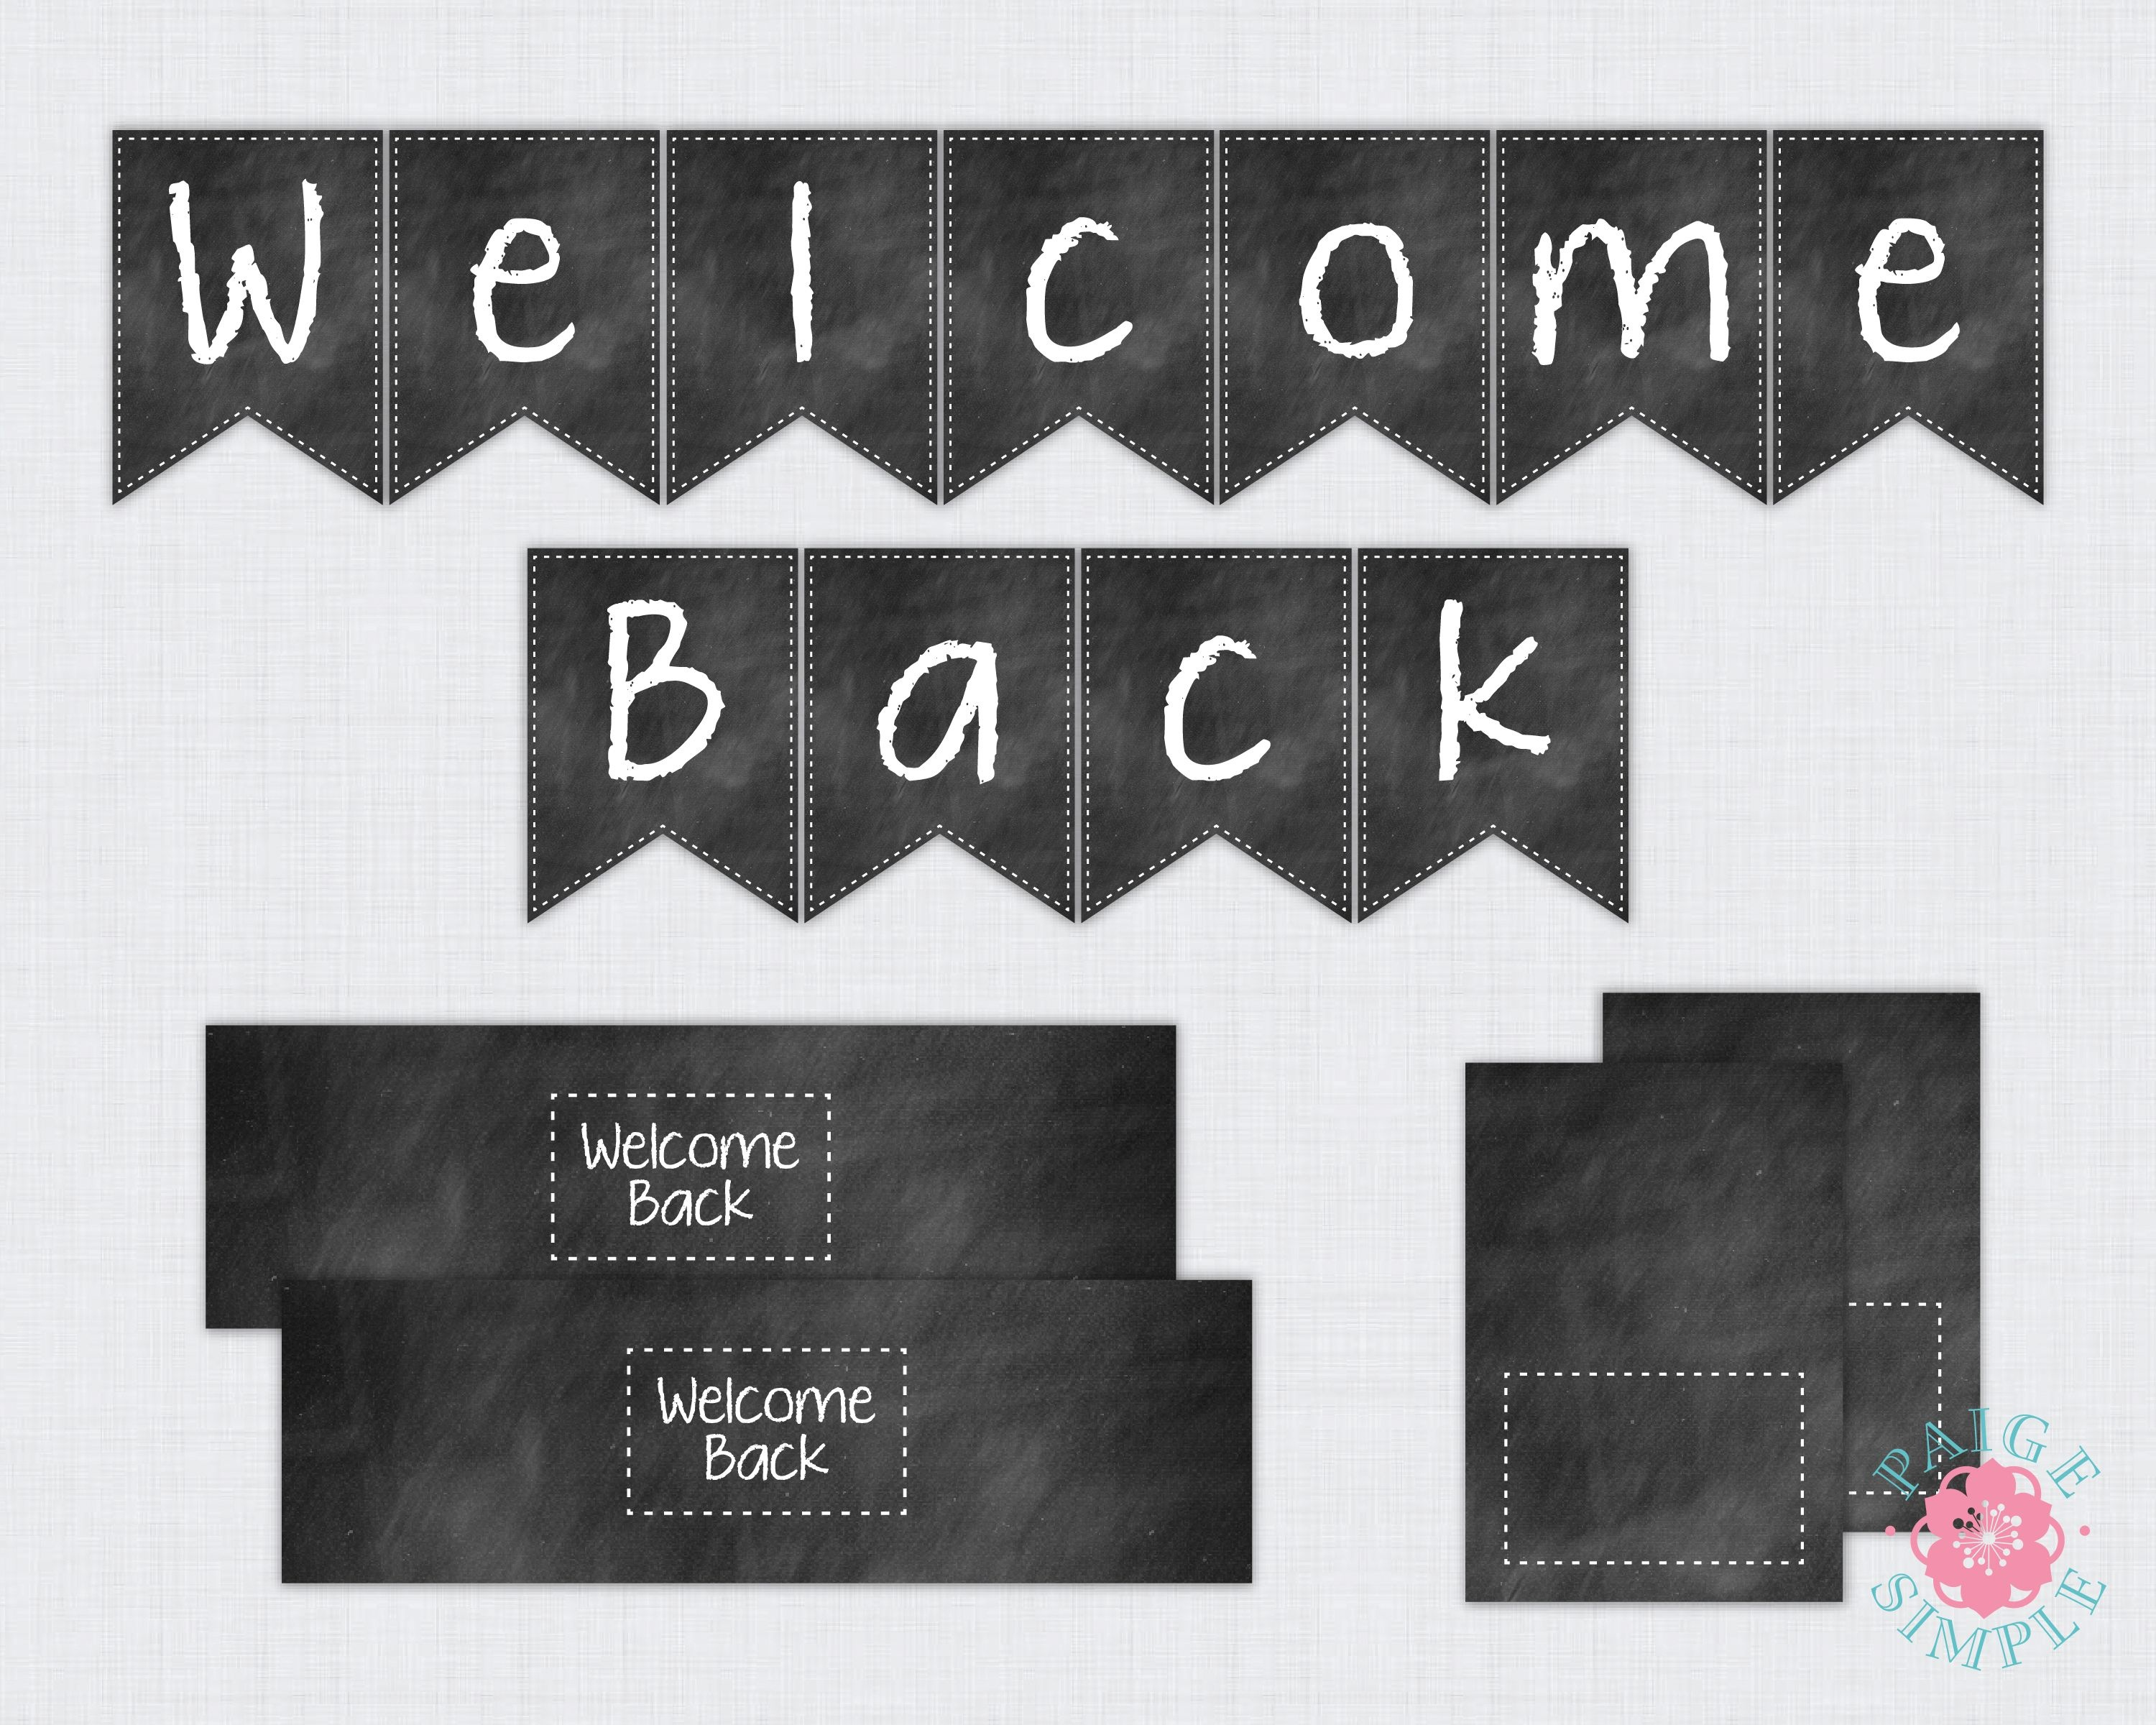 Free Printable Welcome Back To School Banner   Bulletin Boards - Welcome Back Banner Printable Free